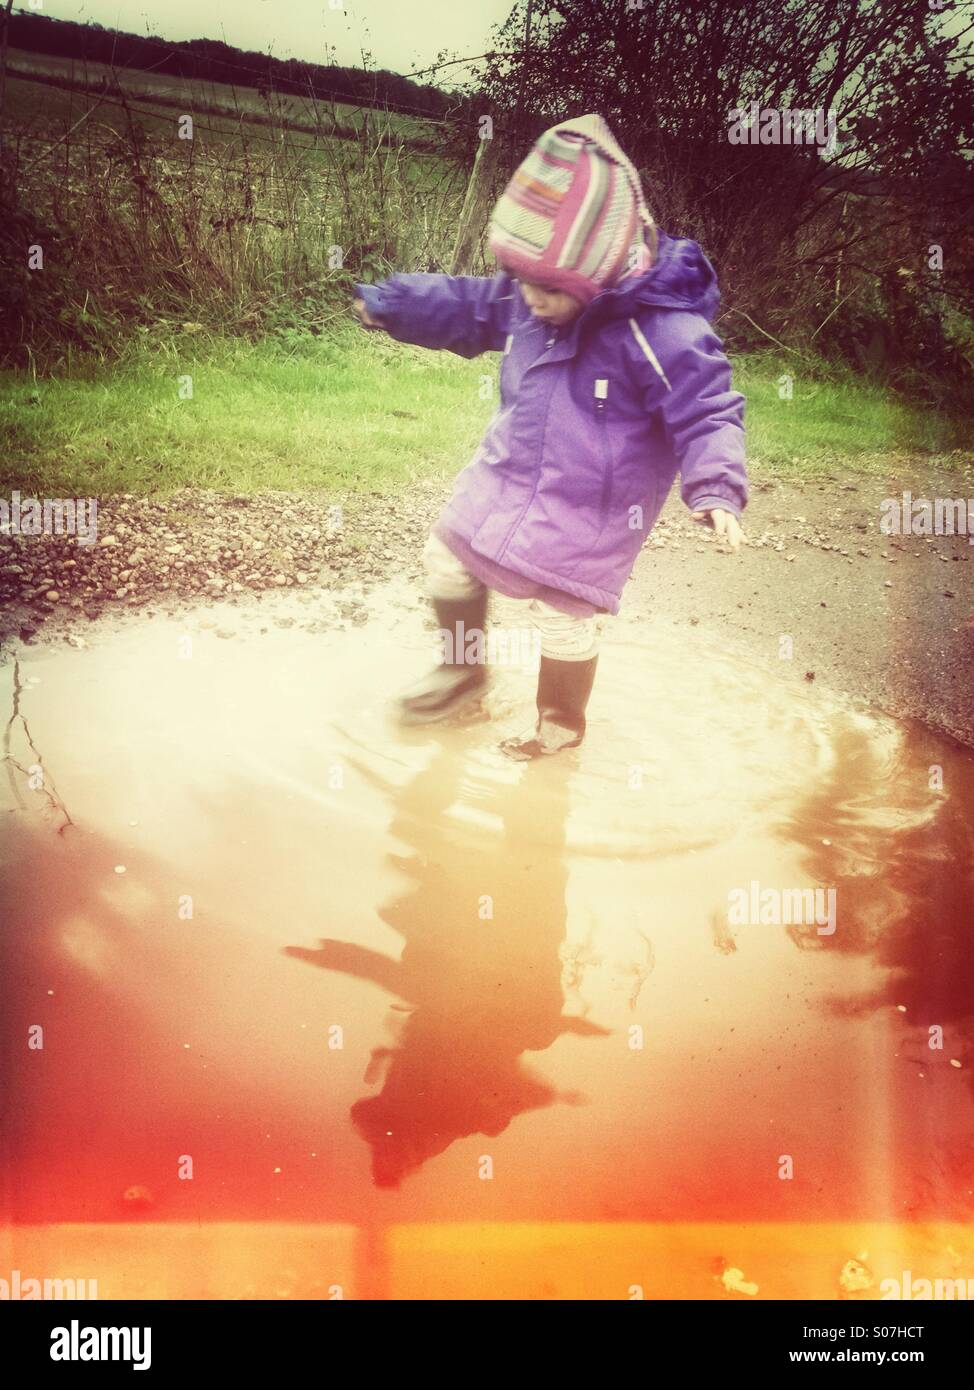 Child aged 2-3 years playing in puddle - Stock Image